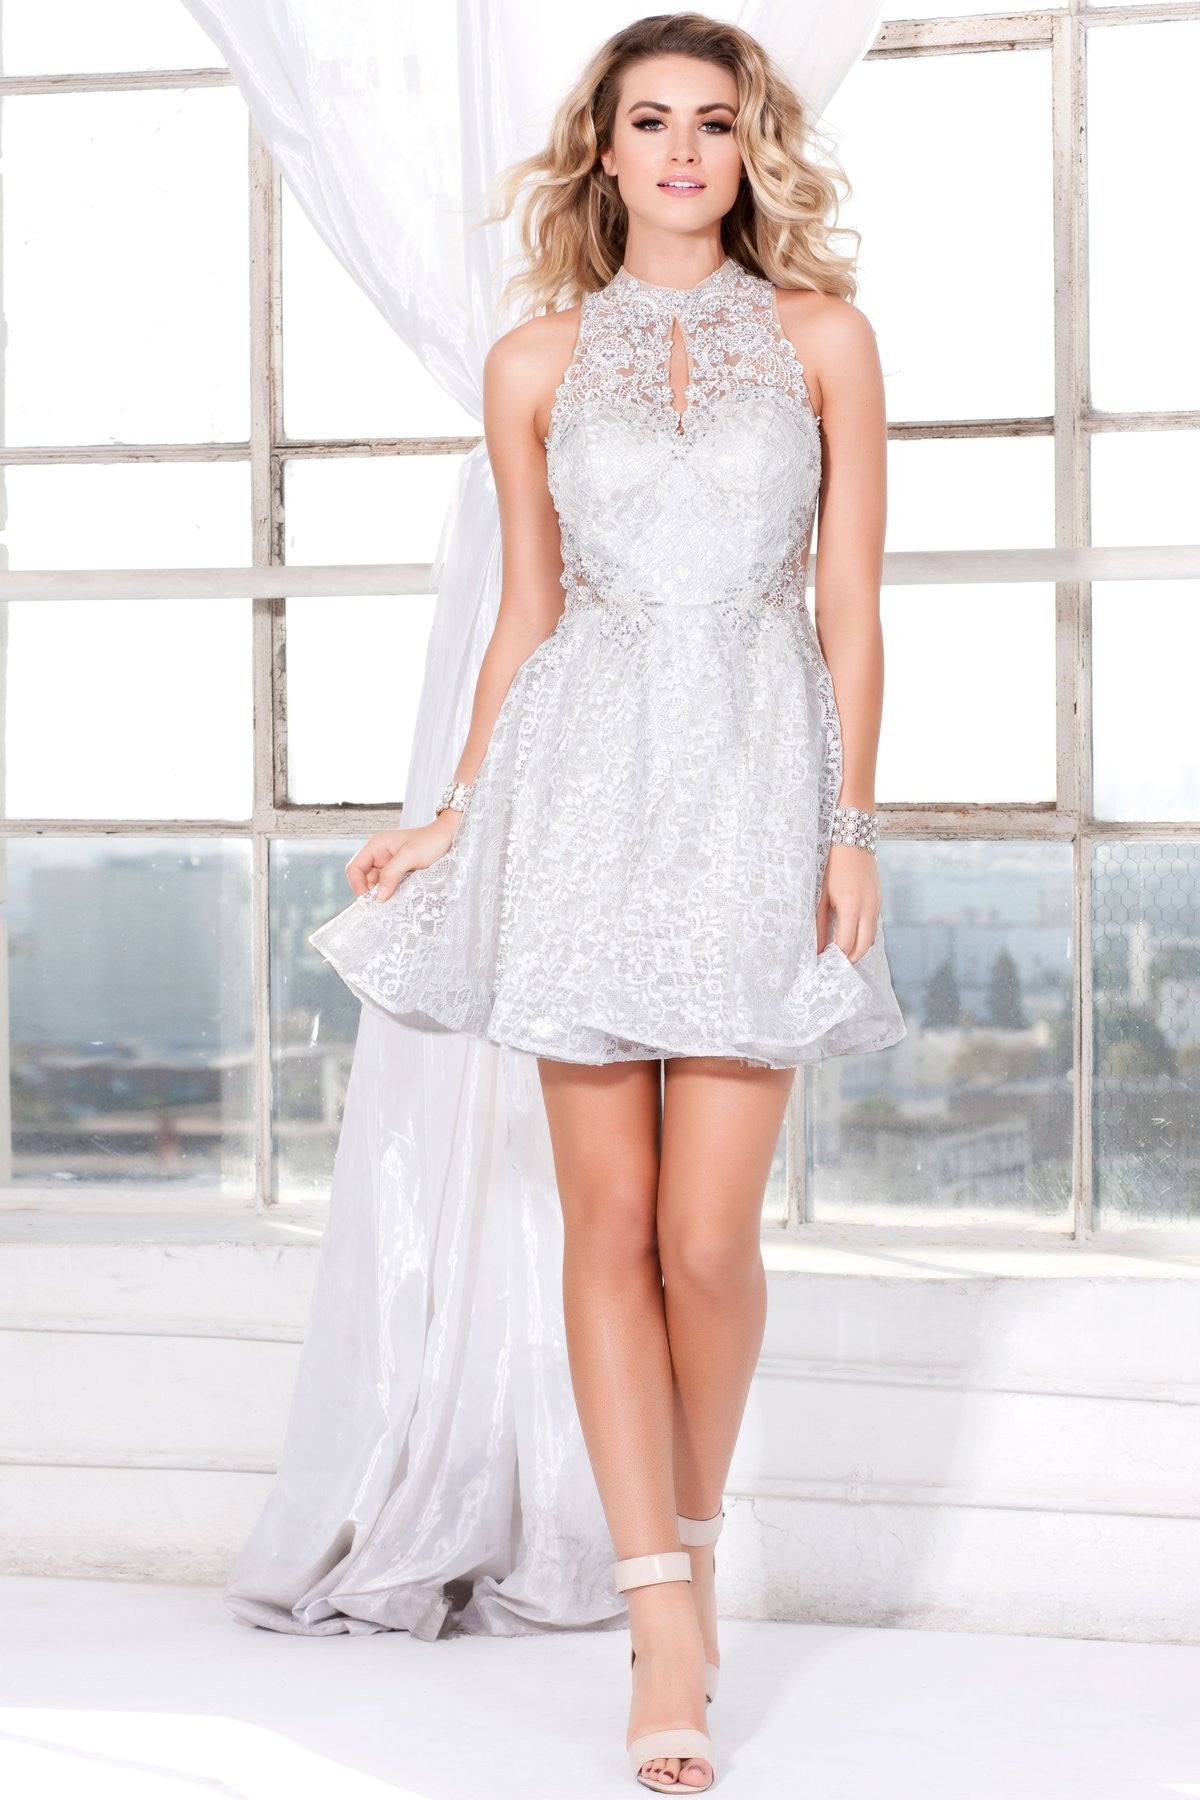 Shail K. USA Style 4083-IVORY View #1